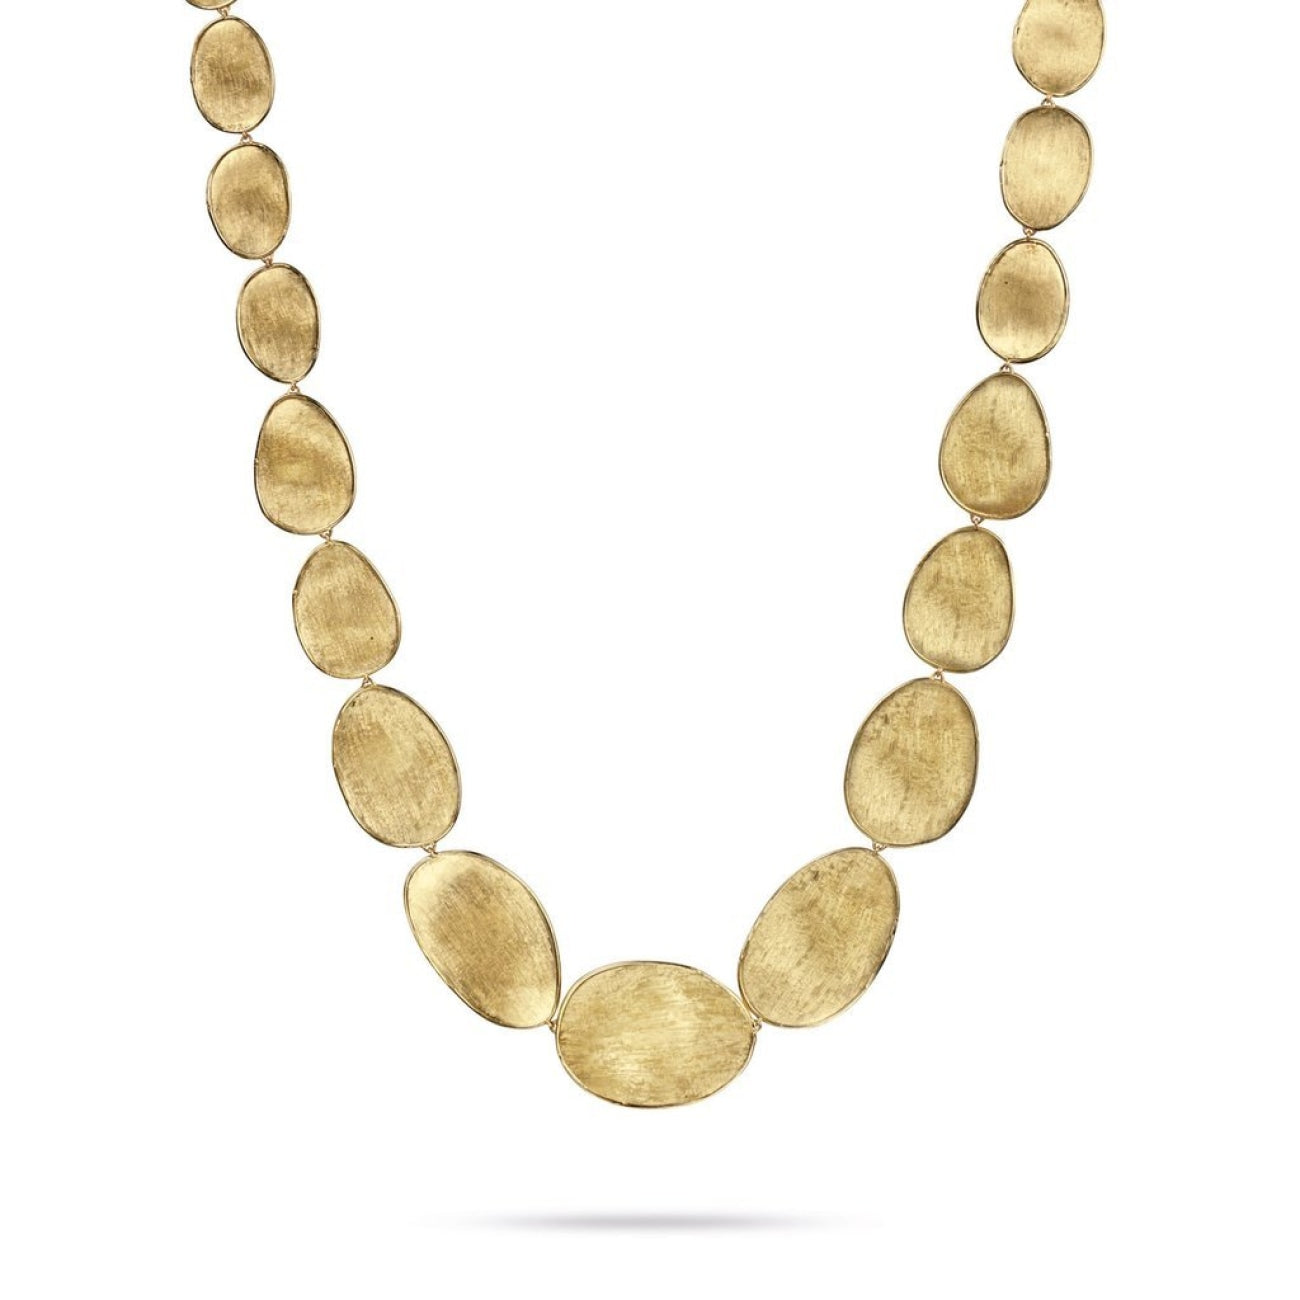 Marco Bicego Jewelry - 18K Yellow Gold Medium Graduated Collar Necklace | Manfredi Jewels